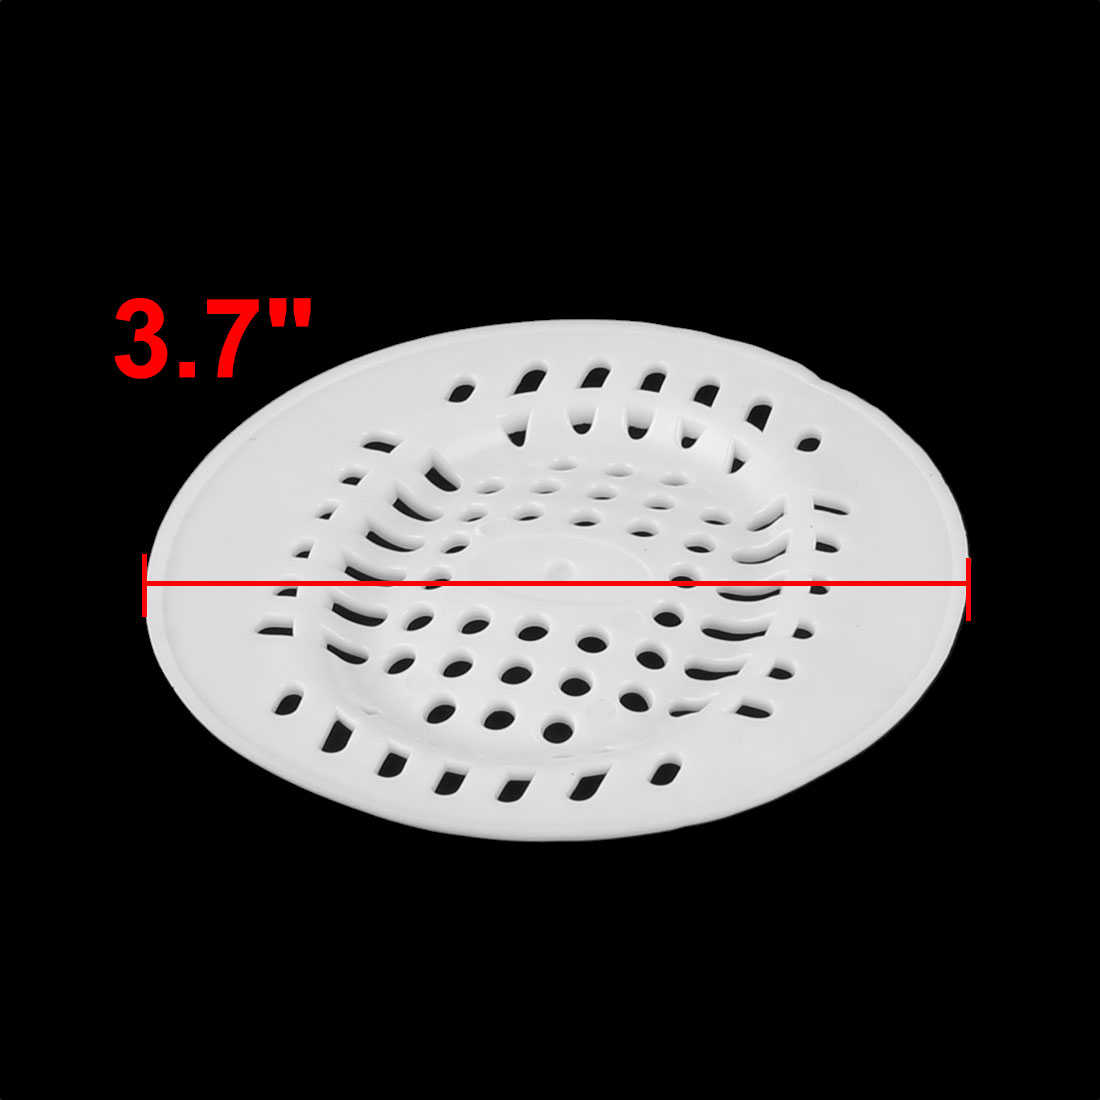 Bath Shower Kitchen Waste Hair Rubber Sink Strainer Drain Filter Stopper Catcher